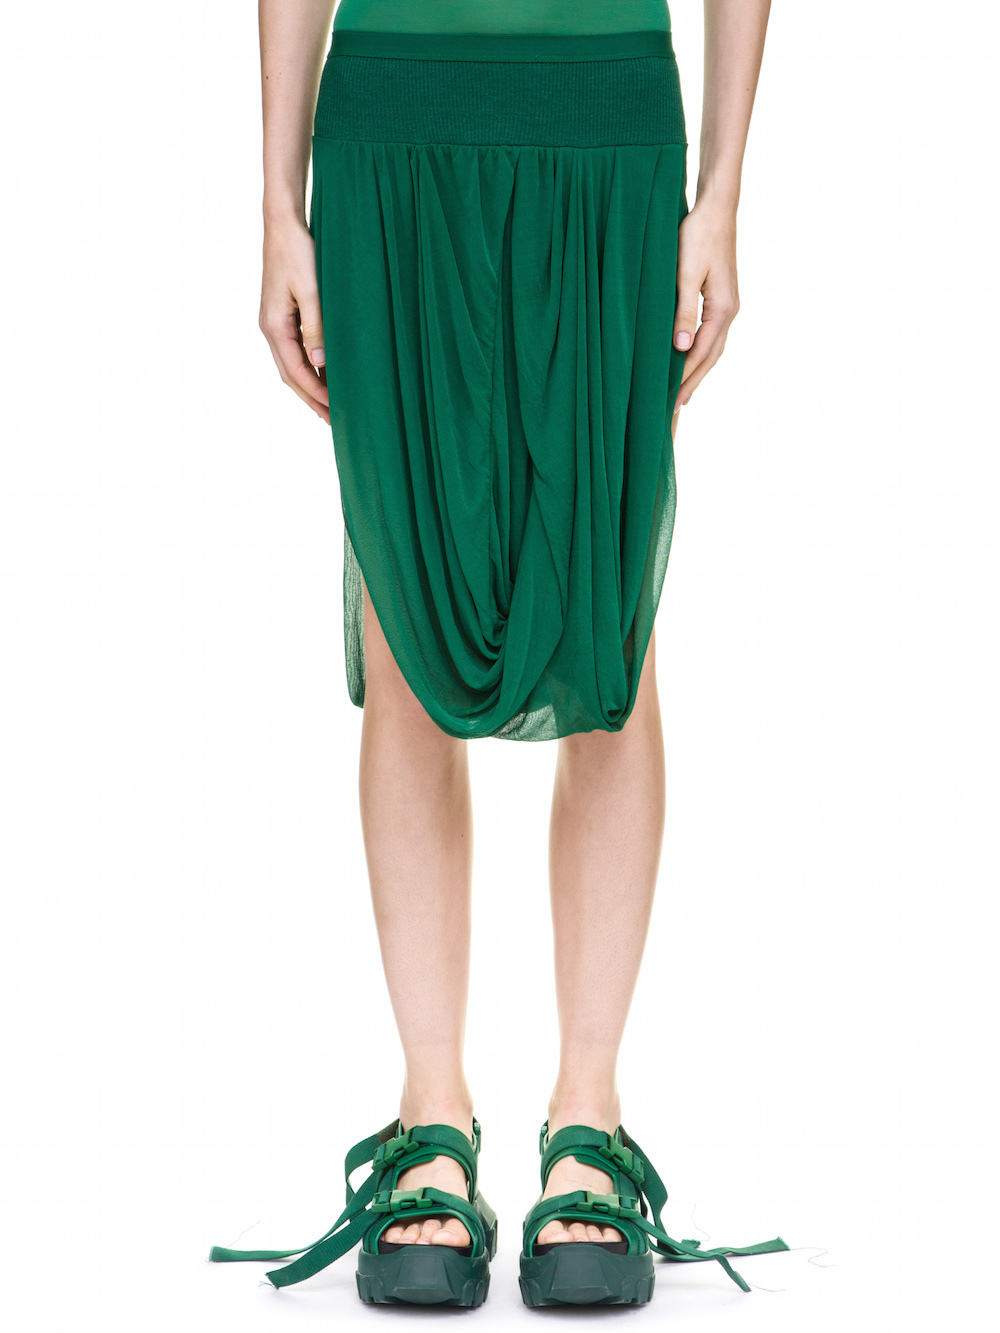 RICK OWENS DRAPED SKIRT IN GREEN